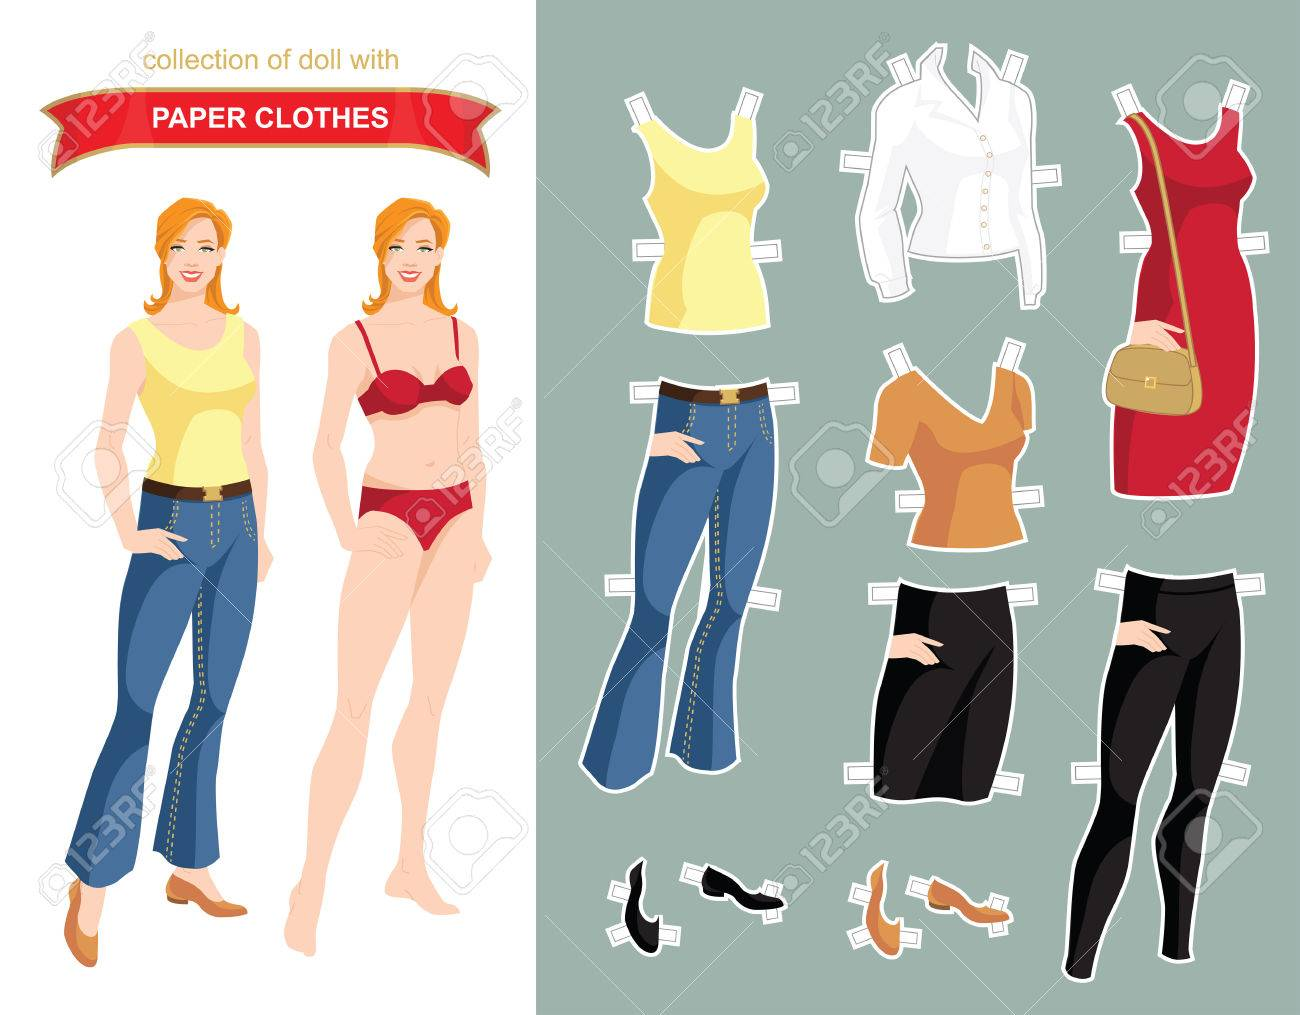 paper doll with clothes for office and holiday body template